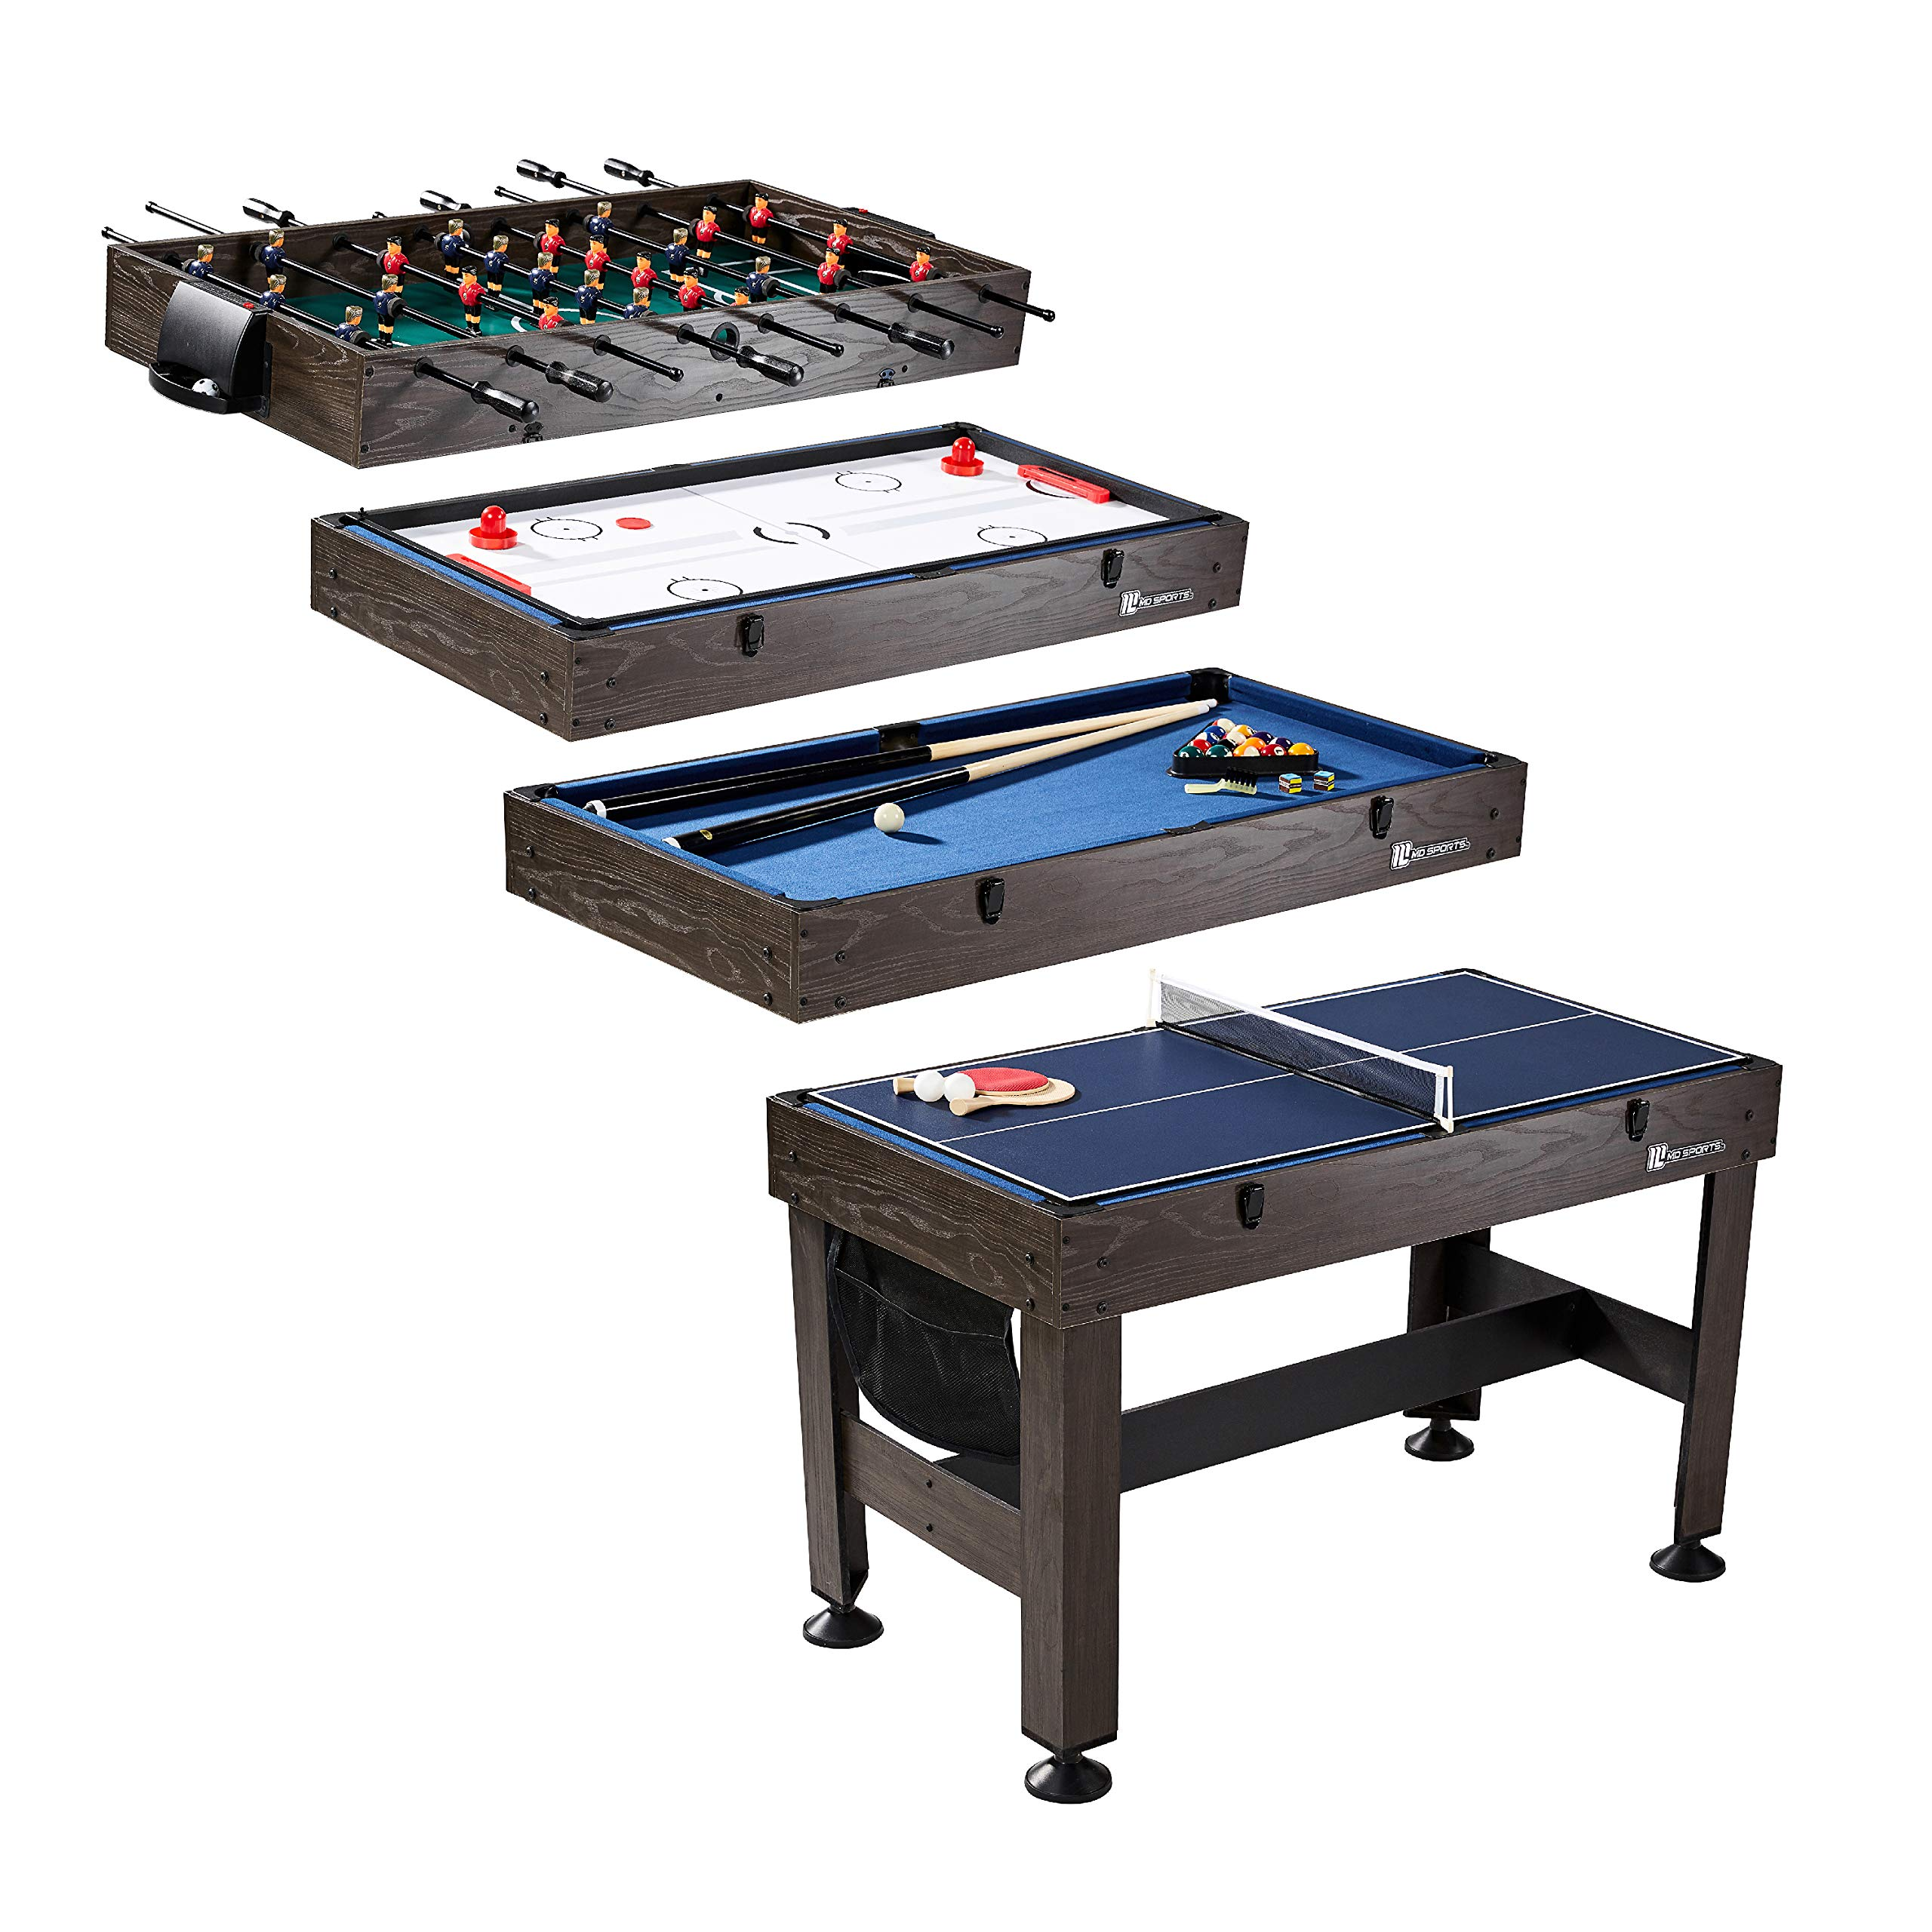 MD Sports Table Tennis, Slide Hockey, Foosball, Billiards, 54'' 4-in-1 Combination Game Set with side Lock Clips - Quick Set-Up, Interchangeable, Fully Equipped by MD Sports